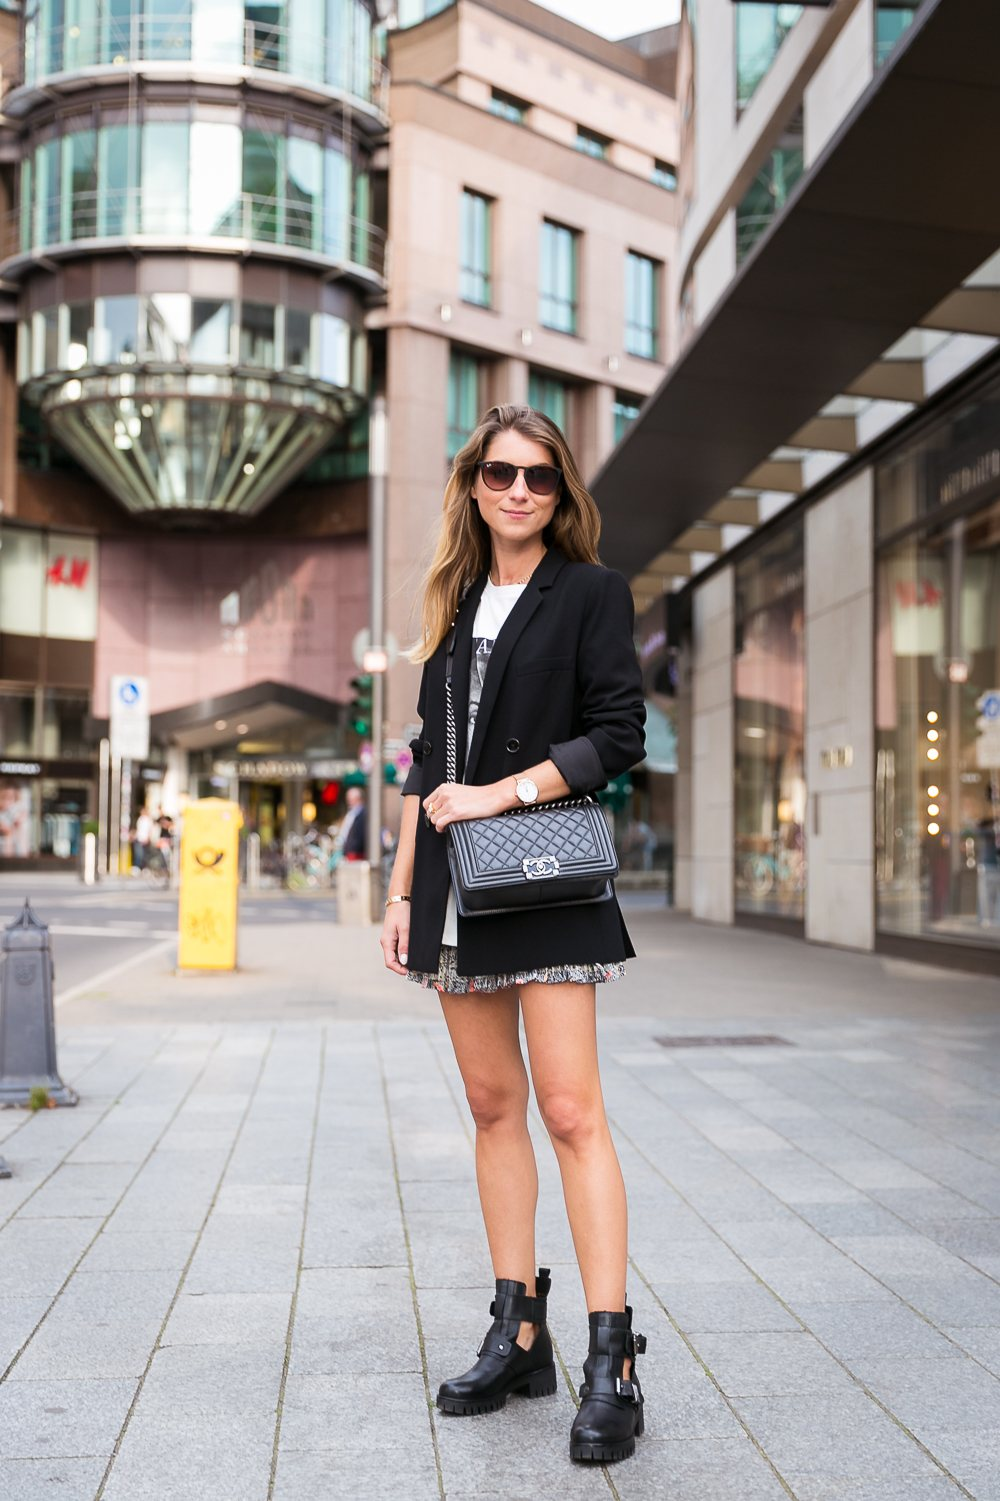 cut-out boots outfit blazer skirt t shirt sade chanel boy bag fashion blog düsseldorf streetstyle